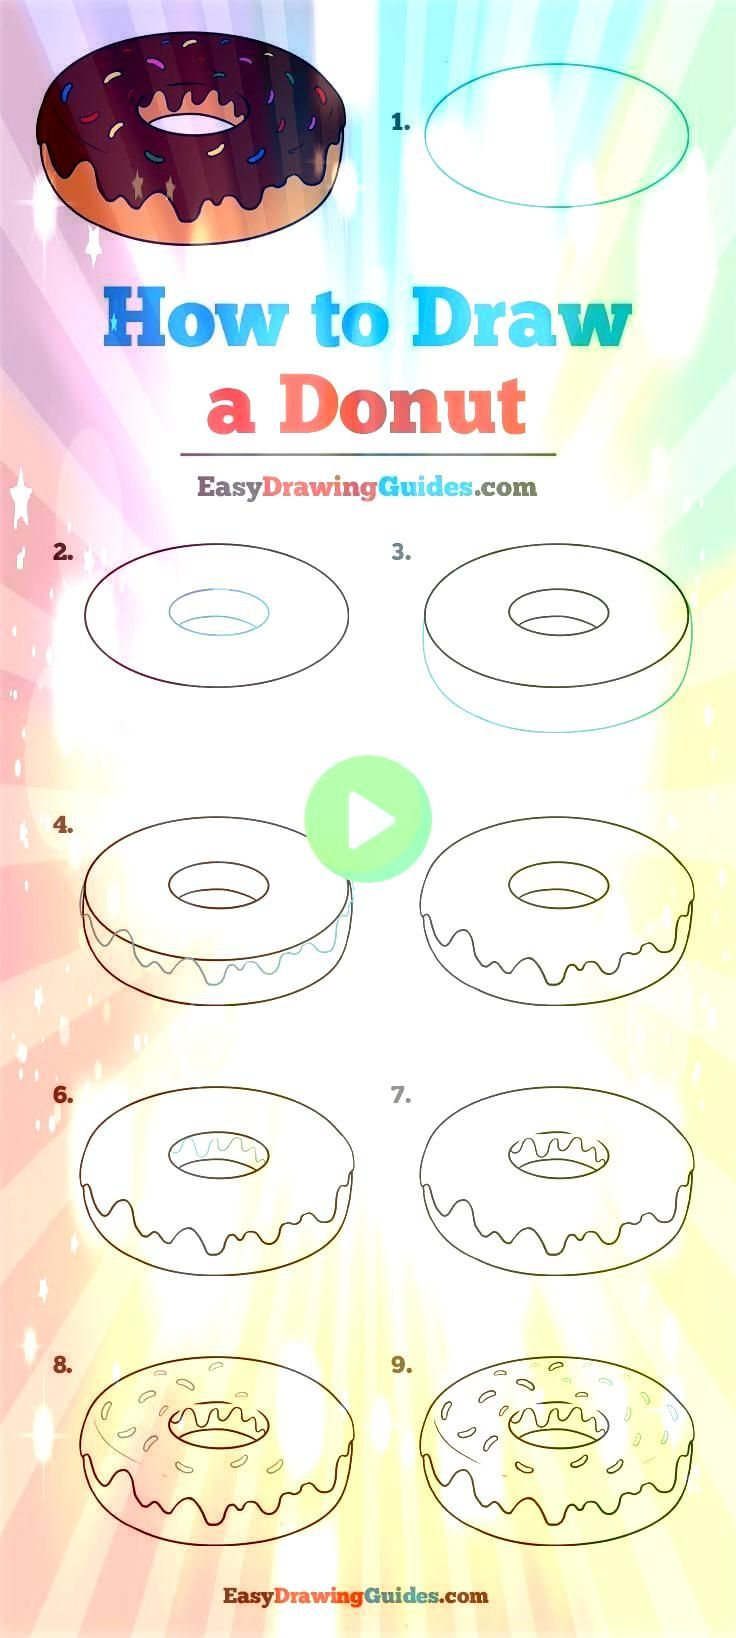 to Draw a Donut How to Draw a Donut iDeas Pencil People How to Draw a Donut iDeas Pencil People  Easy Drawing Tips In 2019 20 Easy Drawing Tutorials for Beginners  Cool T...